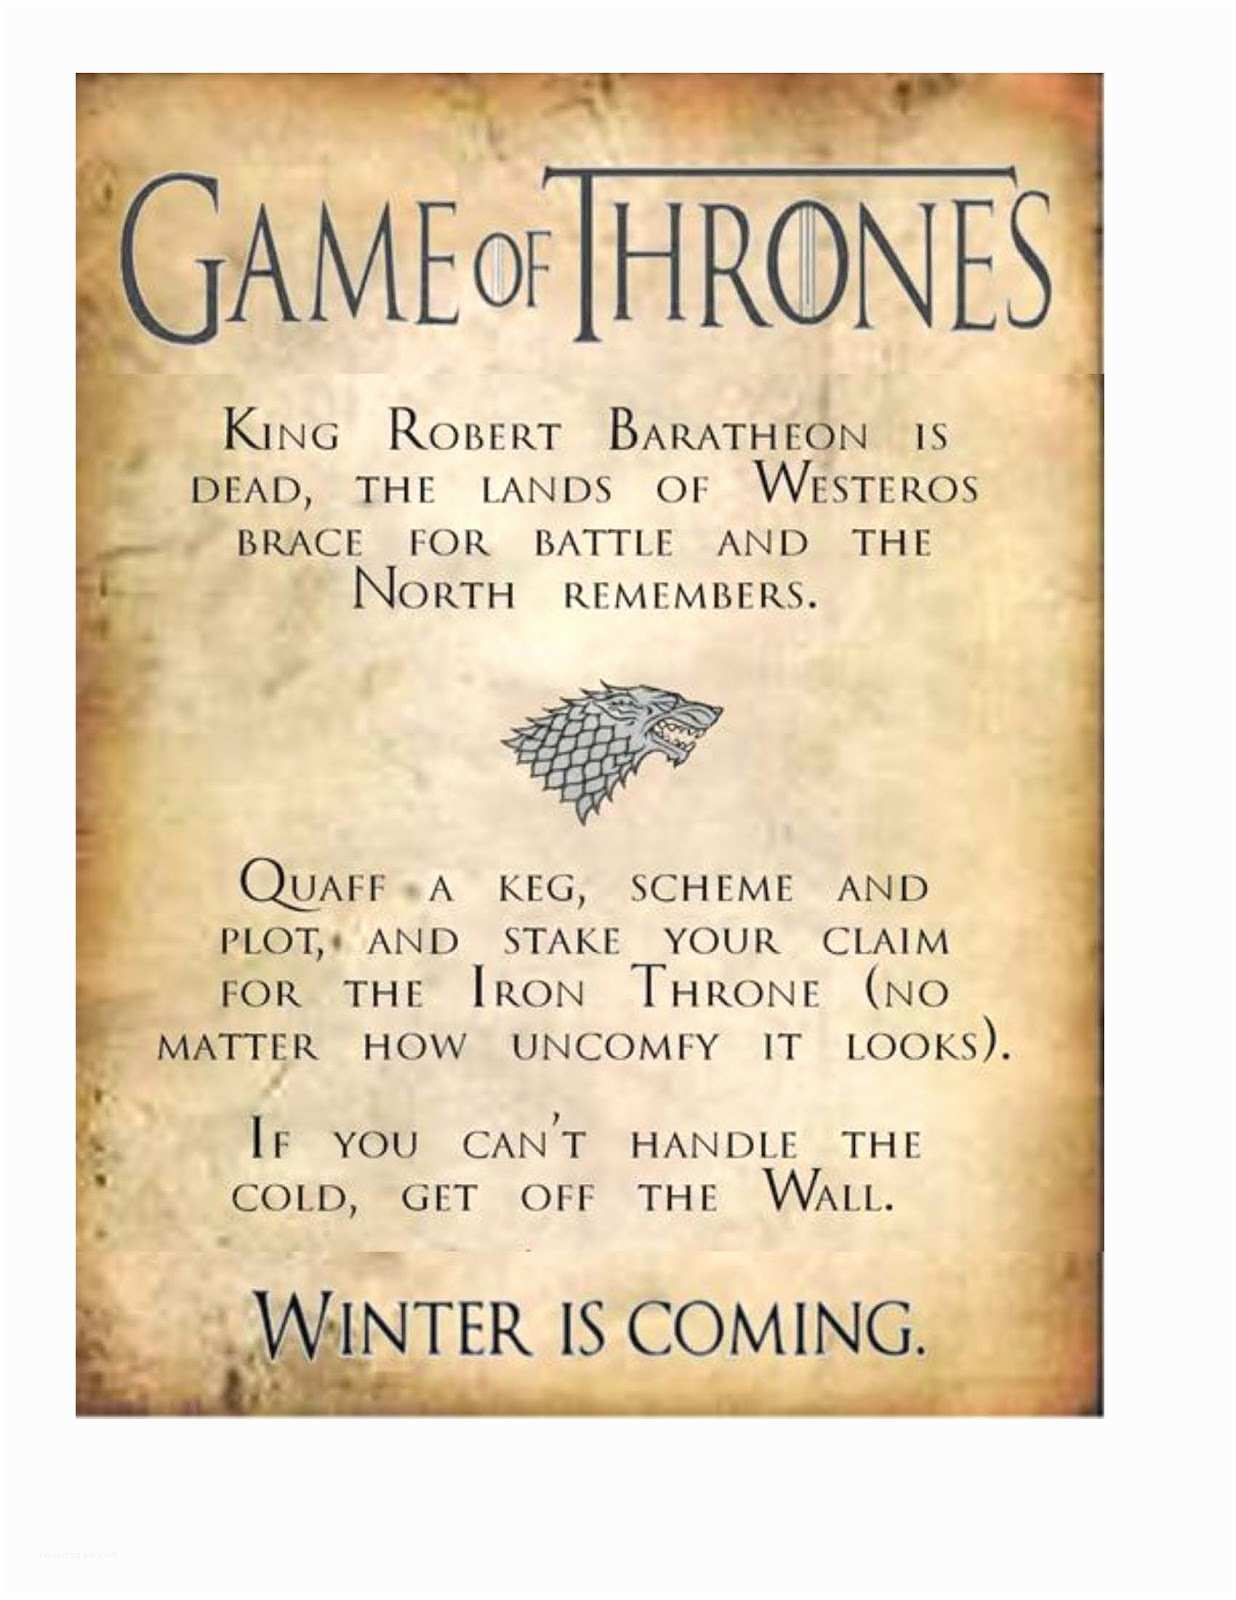 Game Of Thrones Party Invitation Obsessive Game Of Thrones Party Planning Guide S3pp